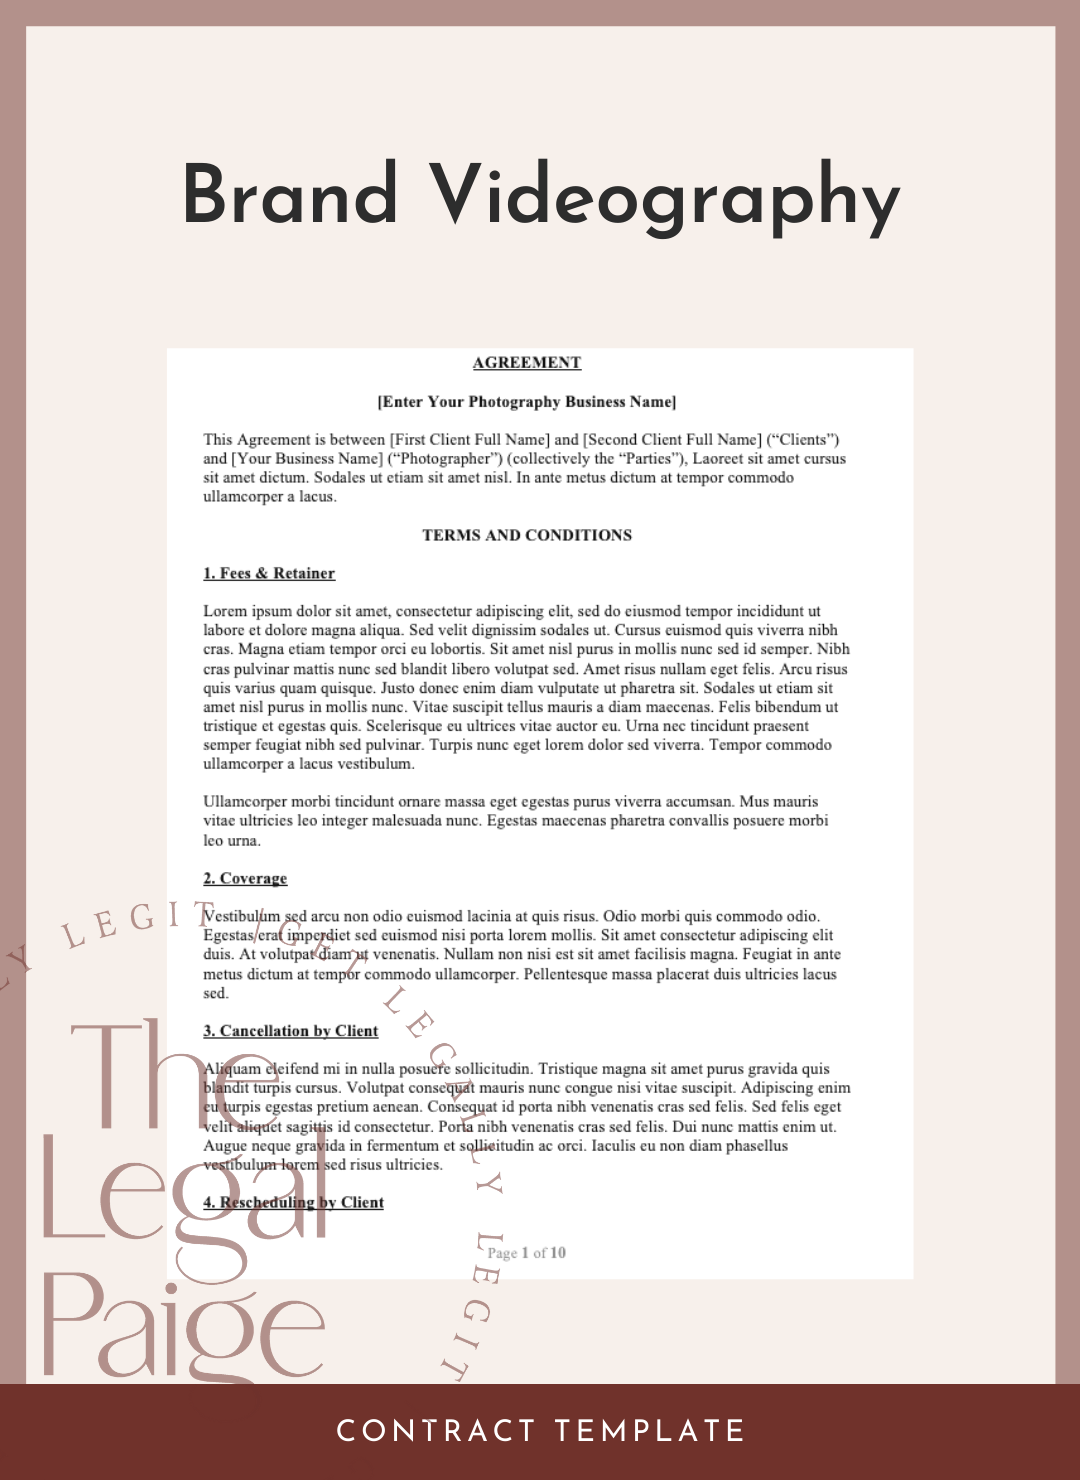 Brand Videography Contract